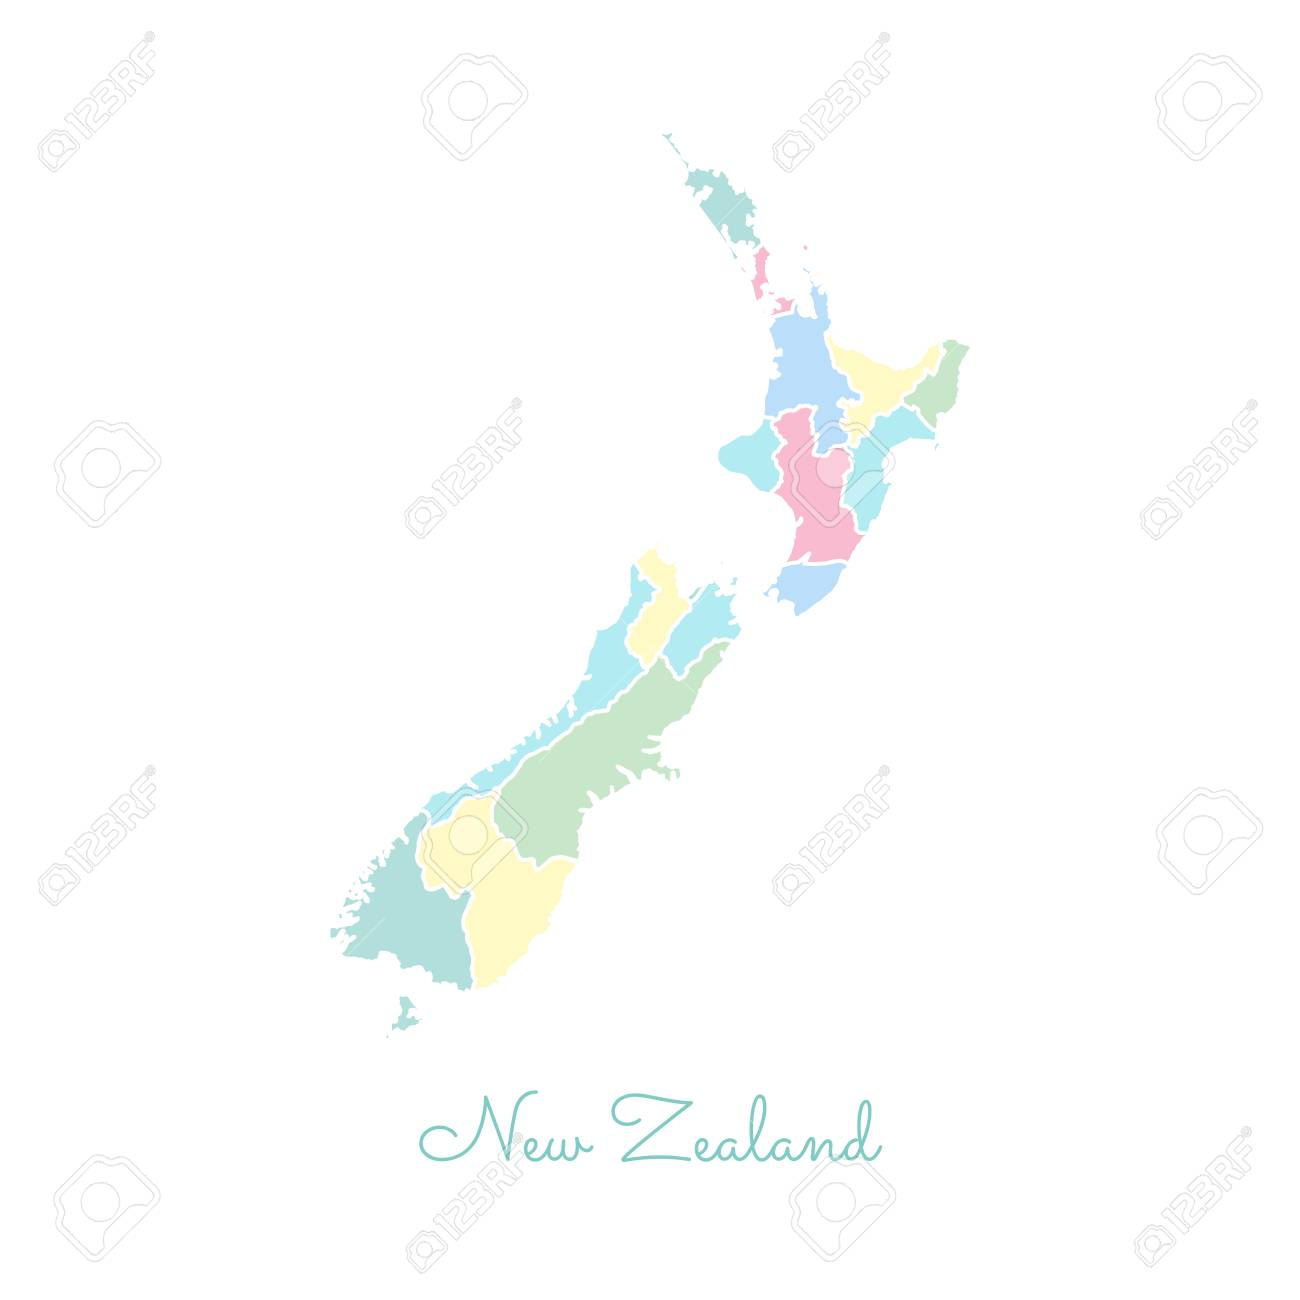 Map New Zealand Regions.New Zealand Region Map Colorful With White Outline Detailed